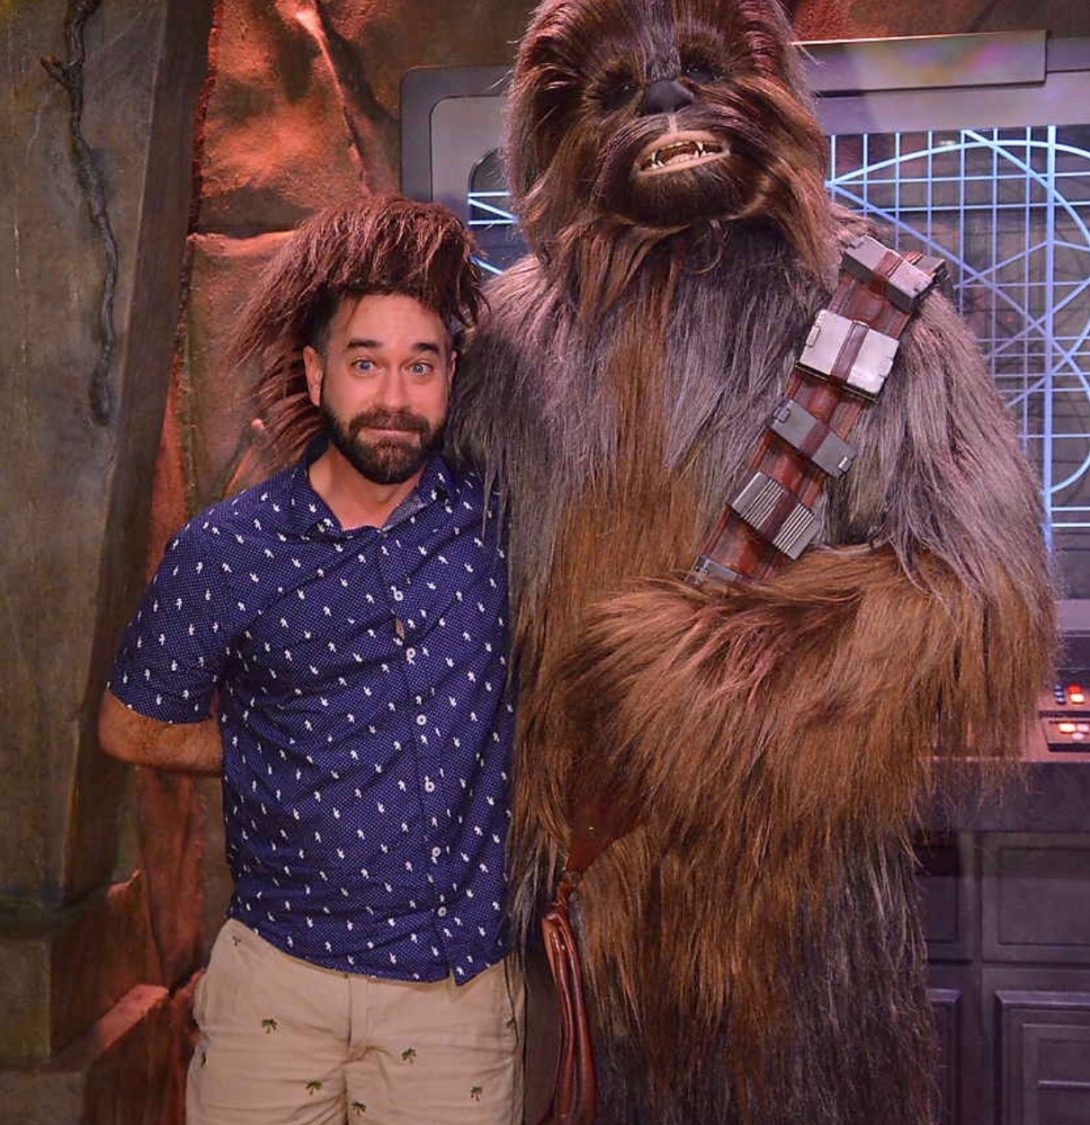 Aaron Sagers standing with Chewbacca